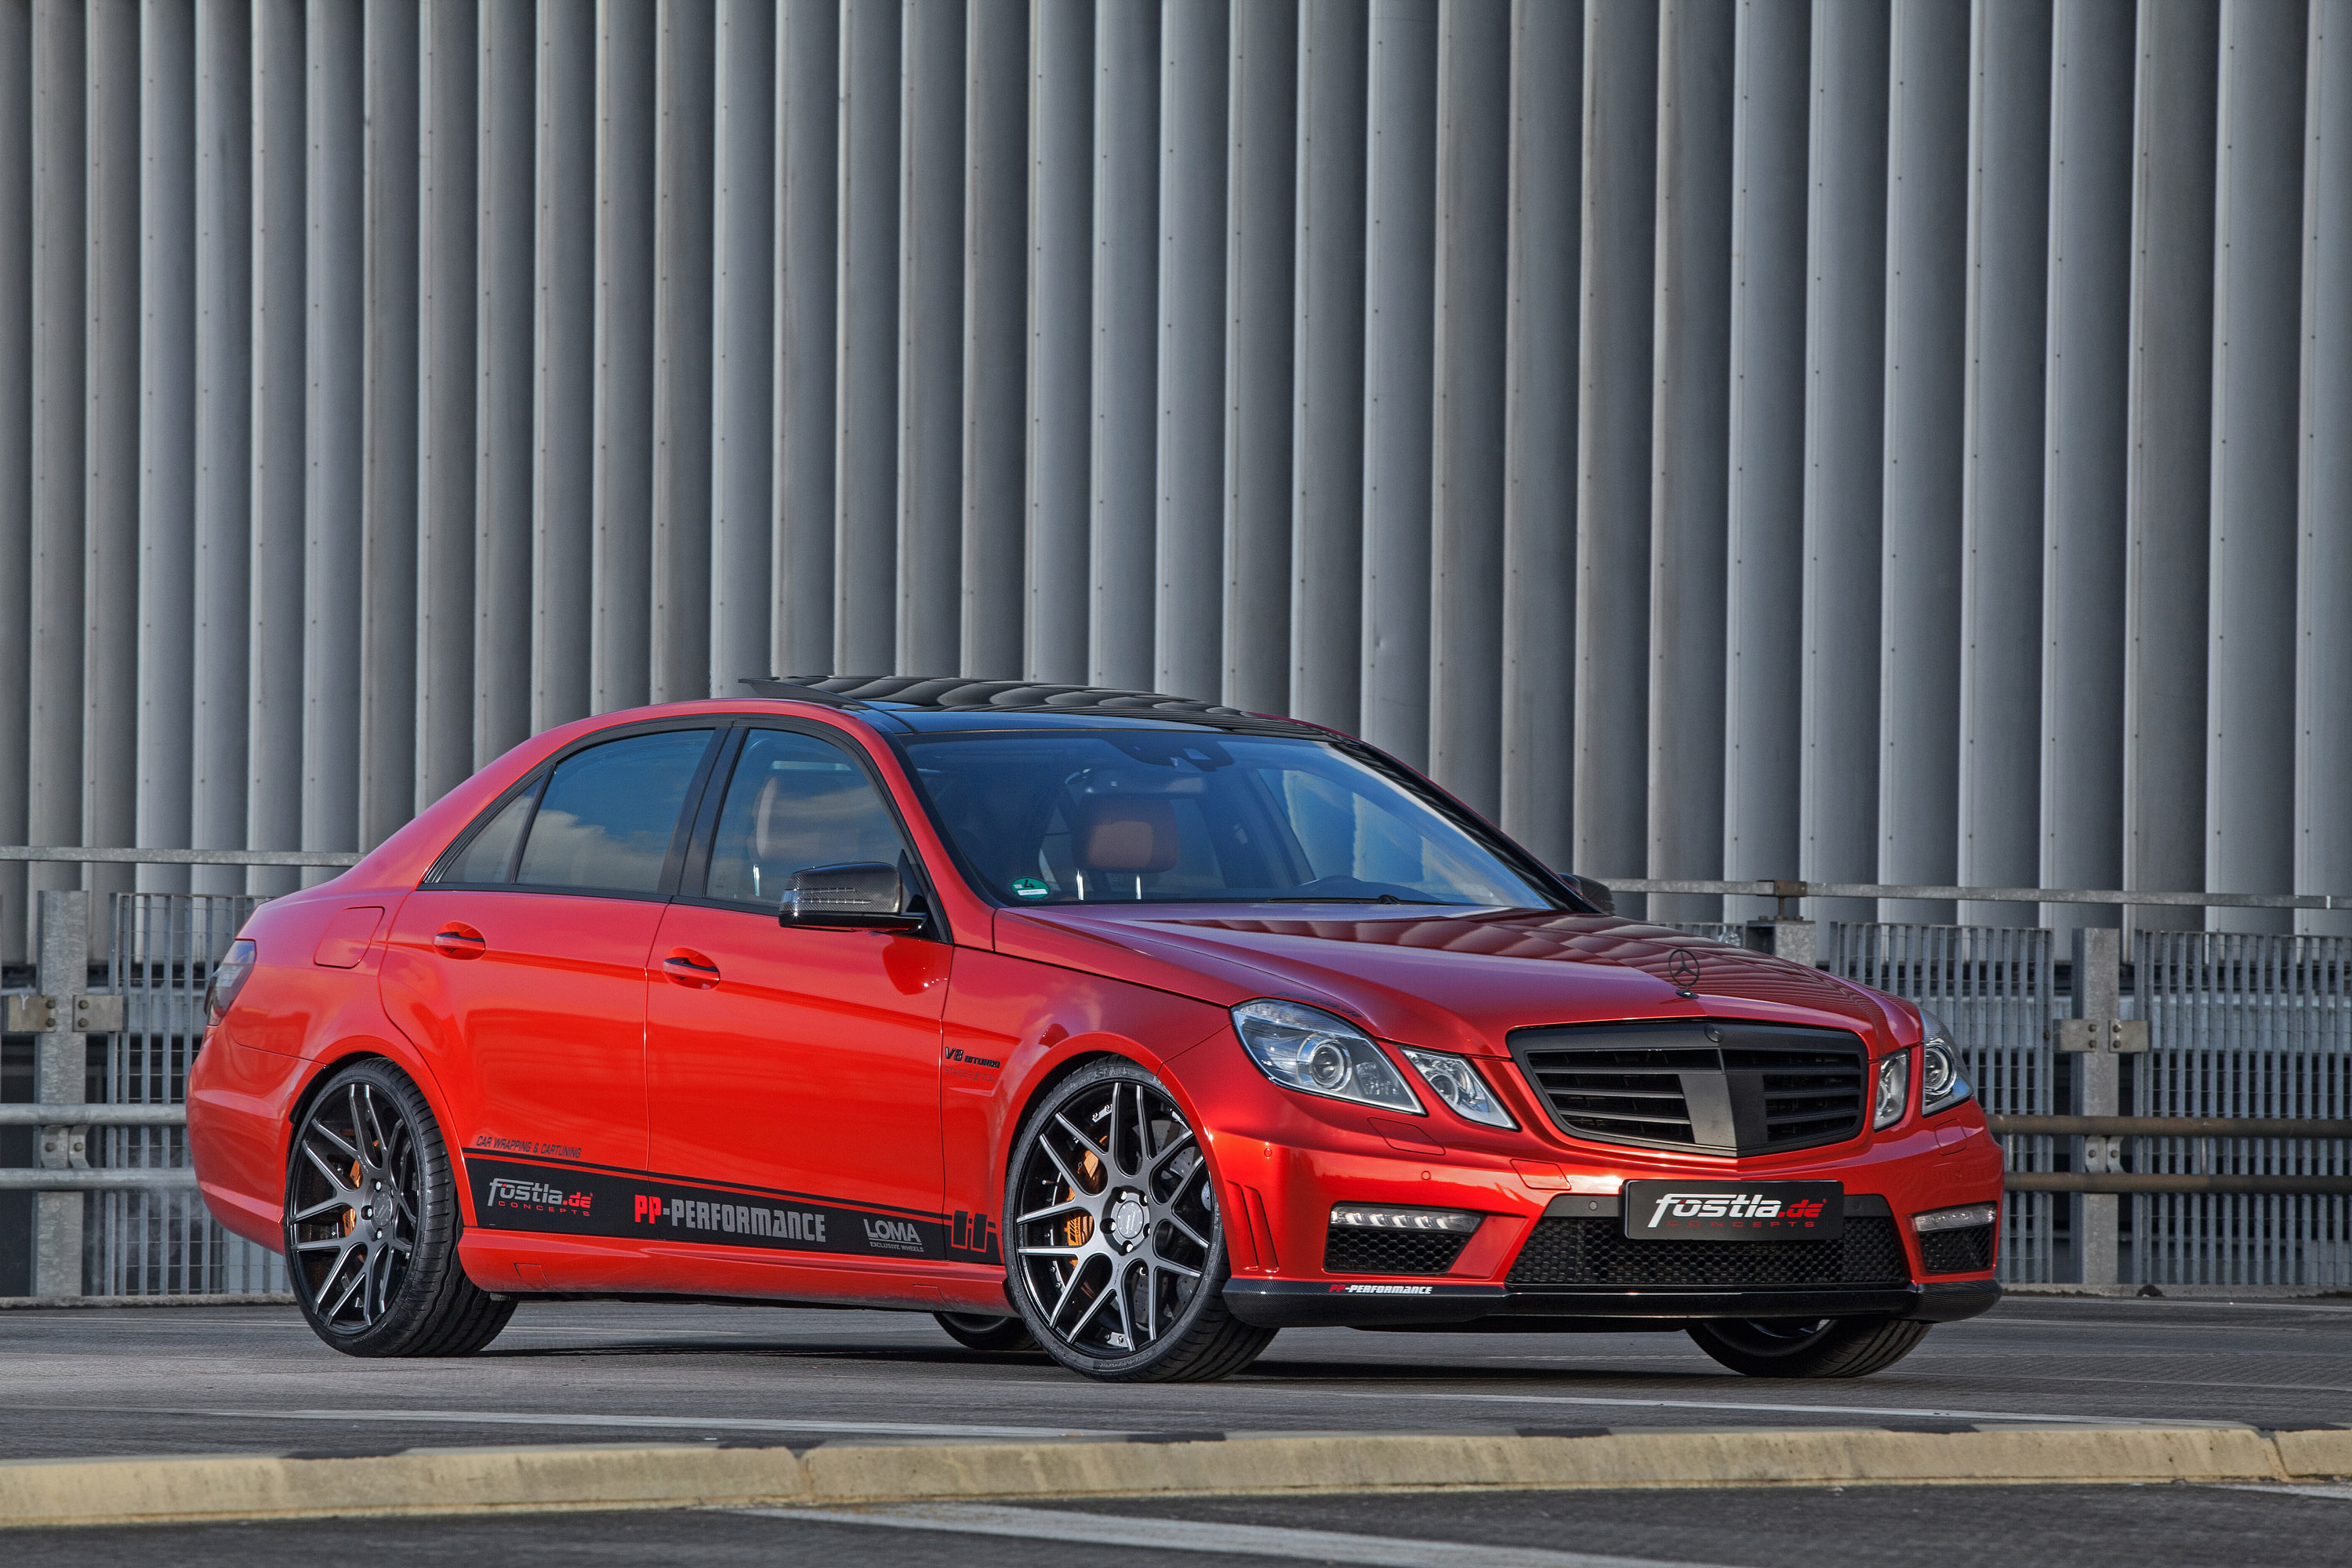 63 Power Wagon >> Mercedes-Benz E 63 AMG W212 Wows with 720 Wild Horses